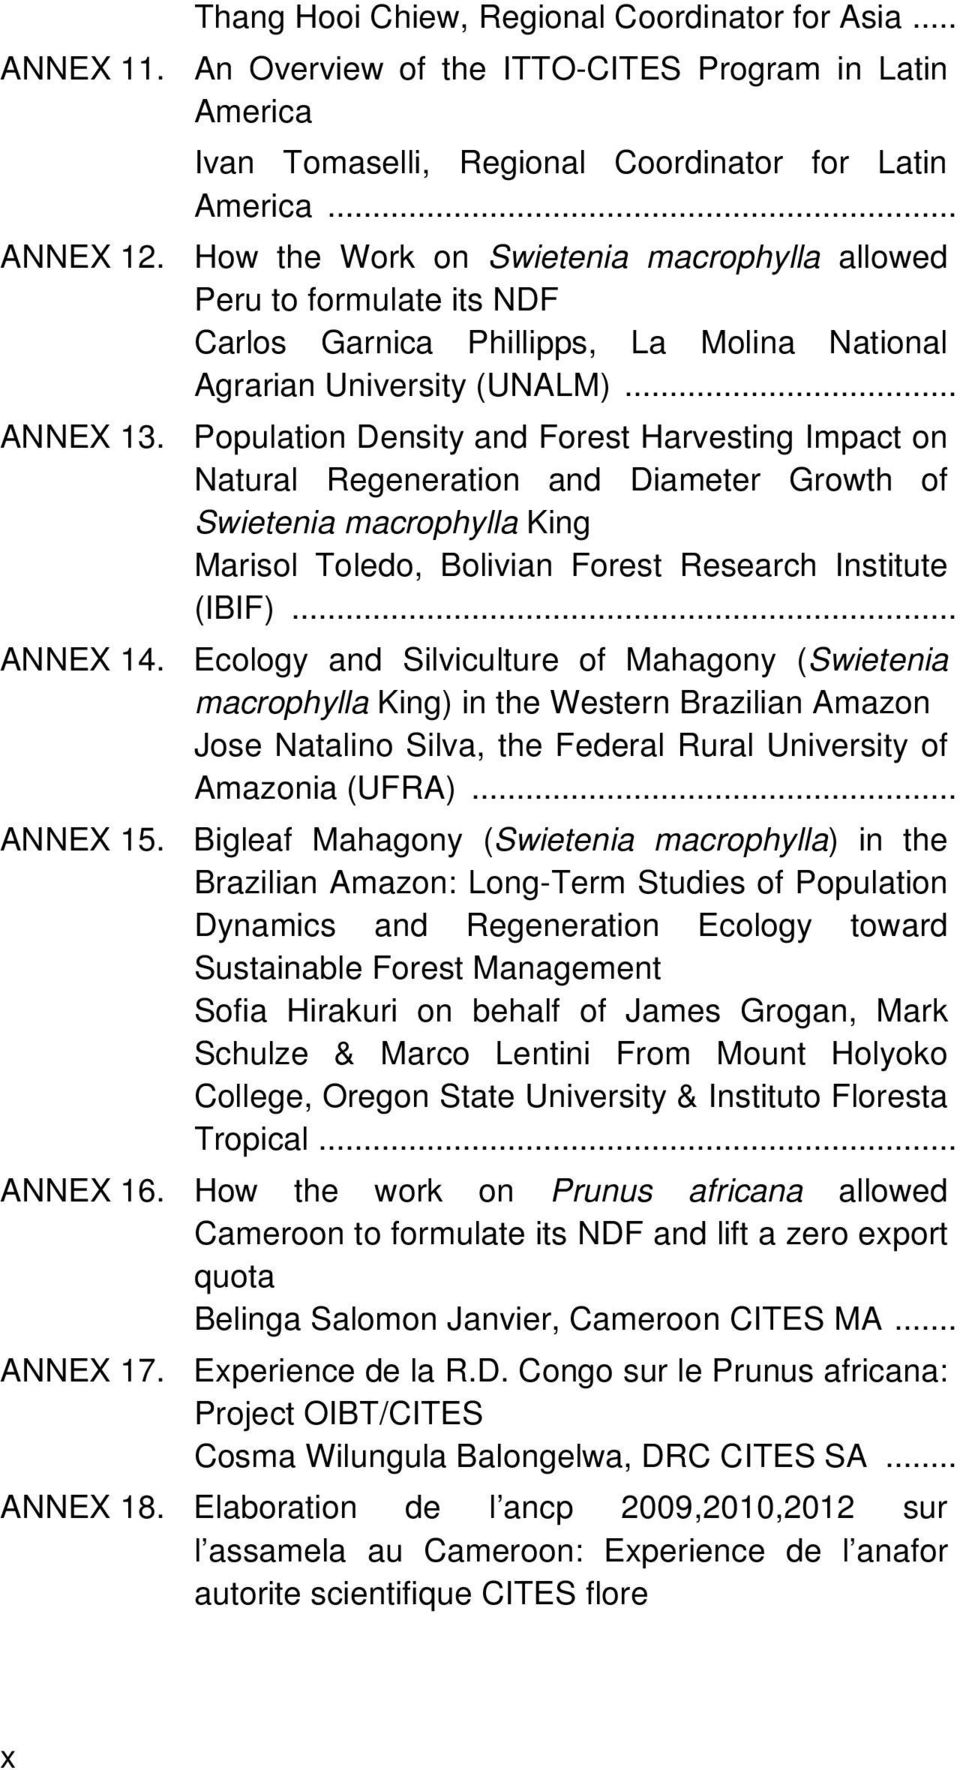 Population Density and Forest Harvesting Impact on Natural Regeneration and Diameter Growth of Swietenia macrophylla King Marisol Toledo, Bolivian Forest Research Institute (IBIF)... ANNEX 14.